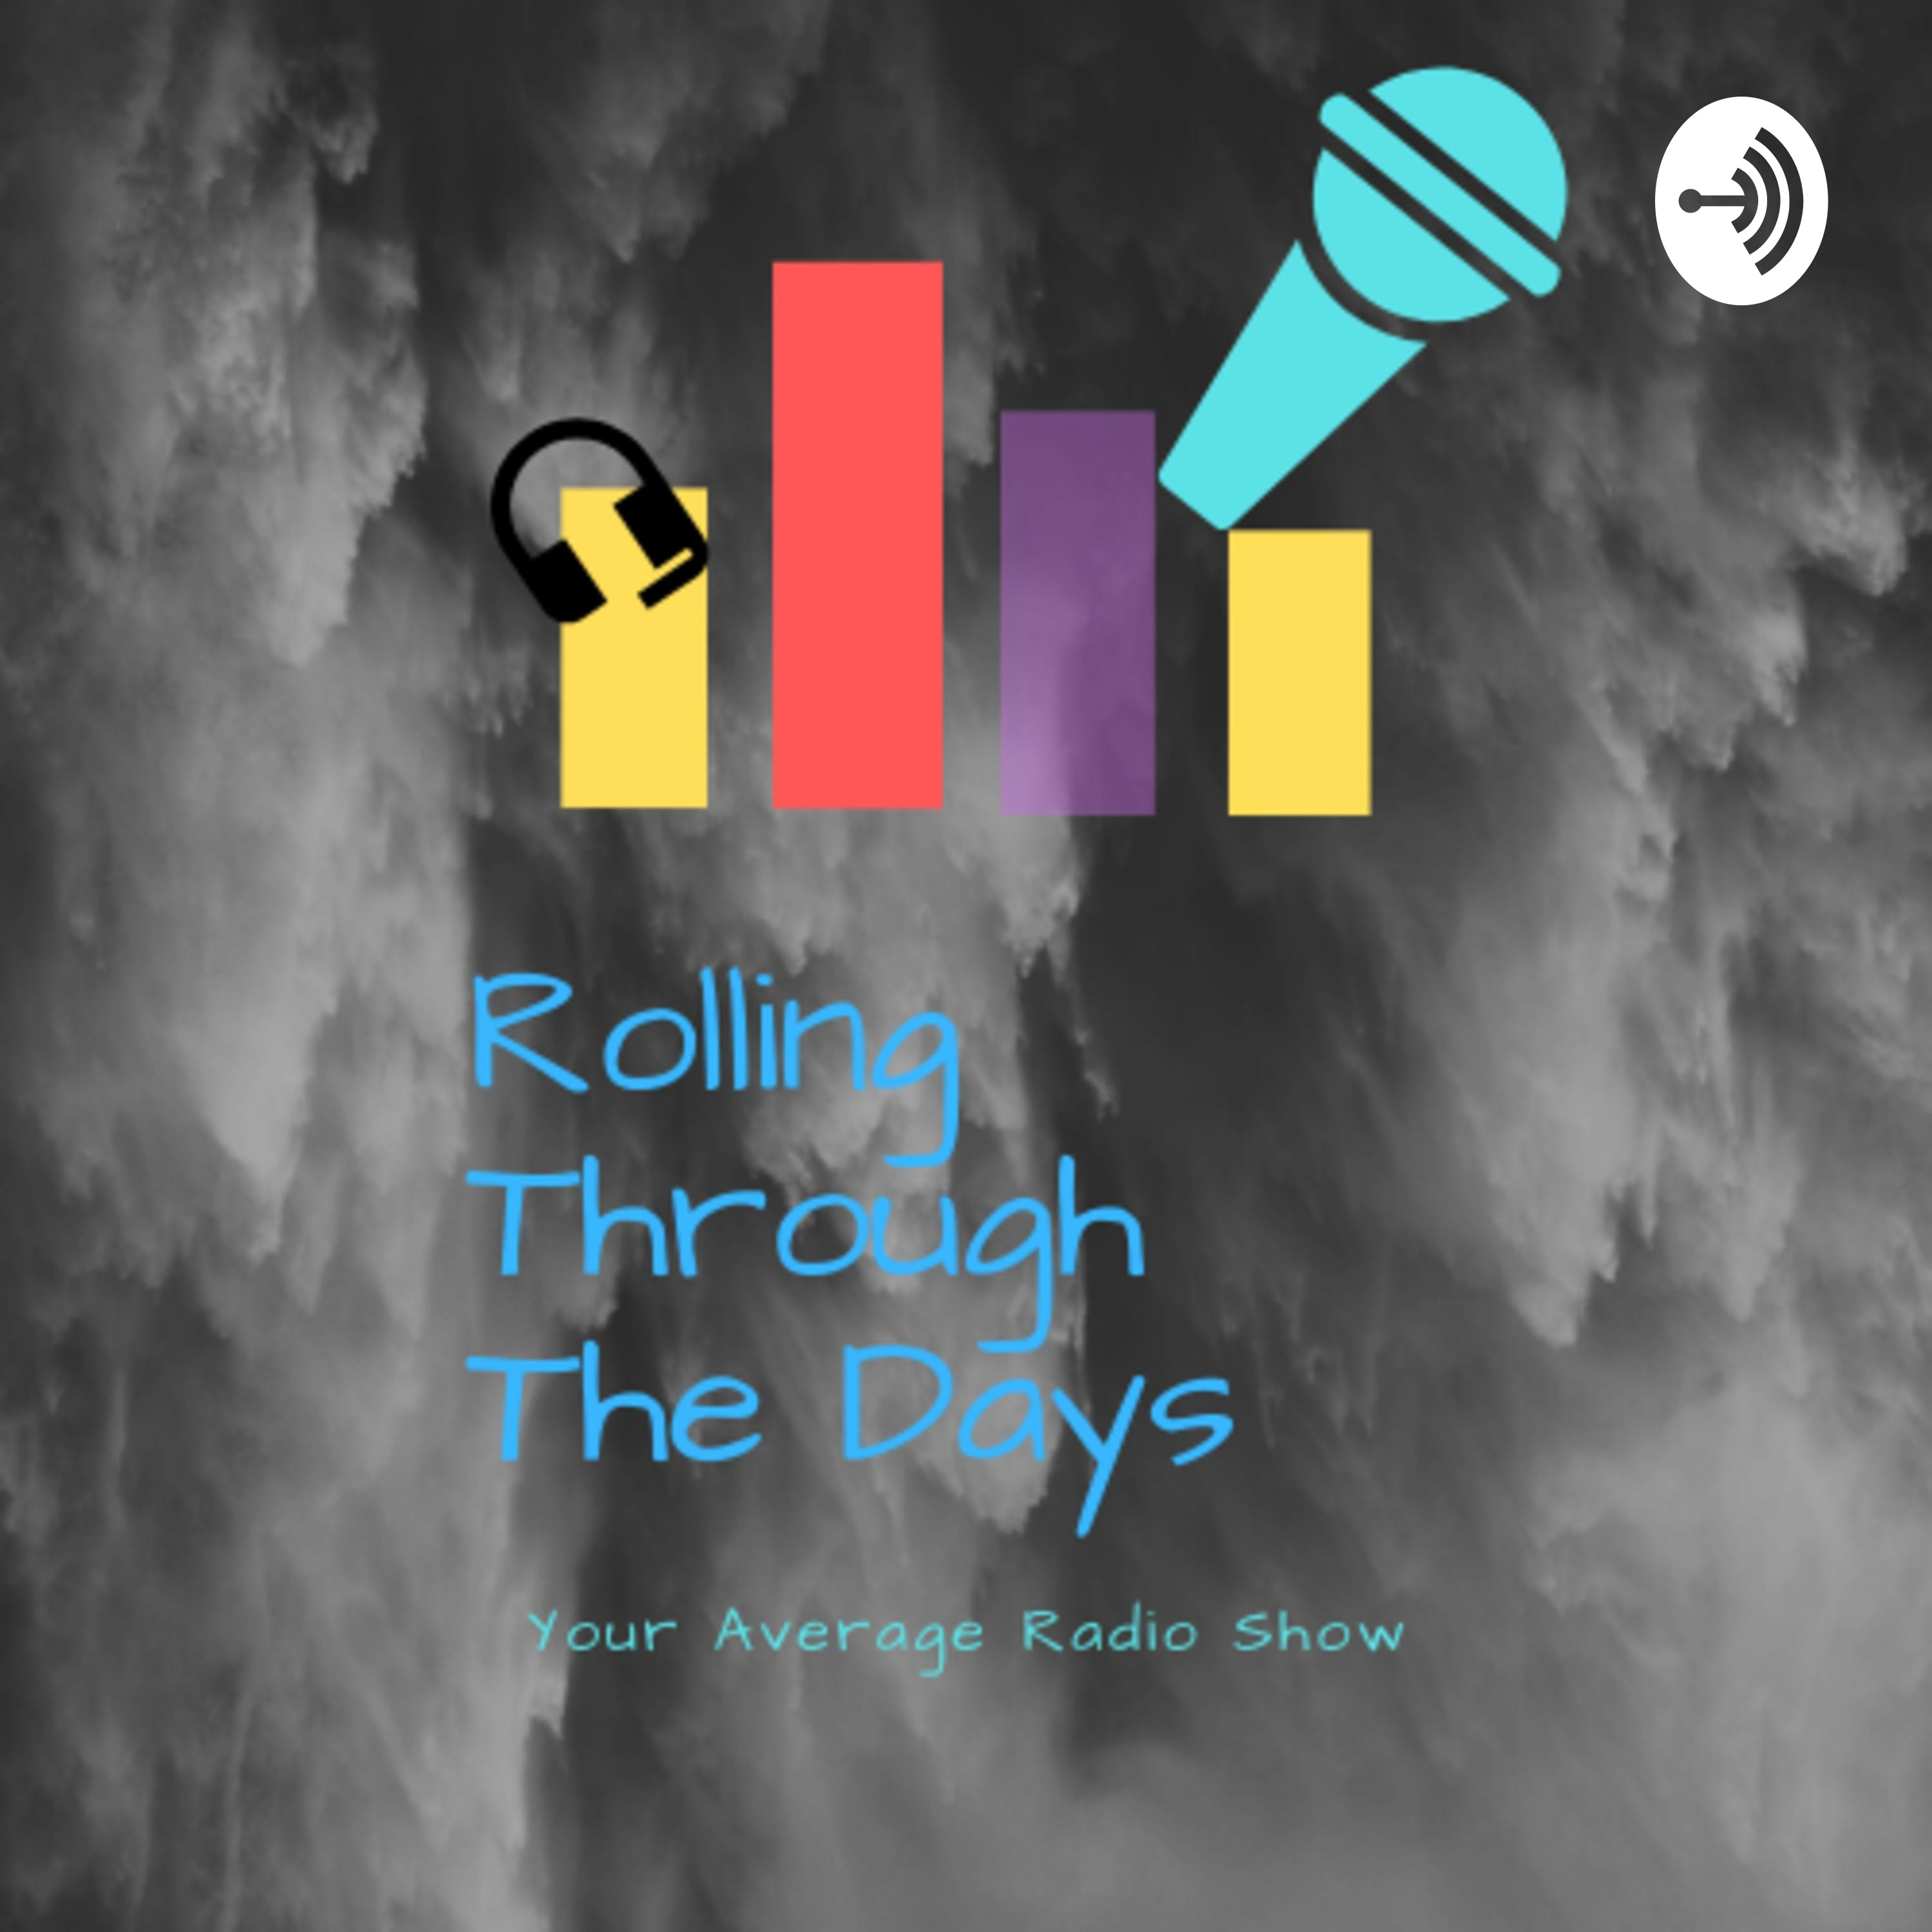 Rolling through the days eps:1 1-16-20